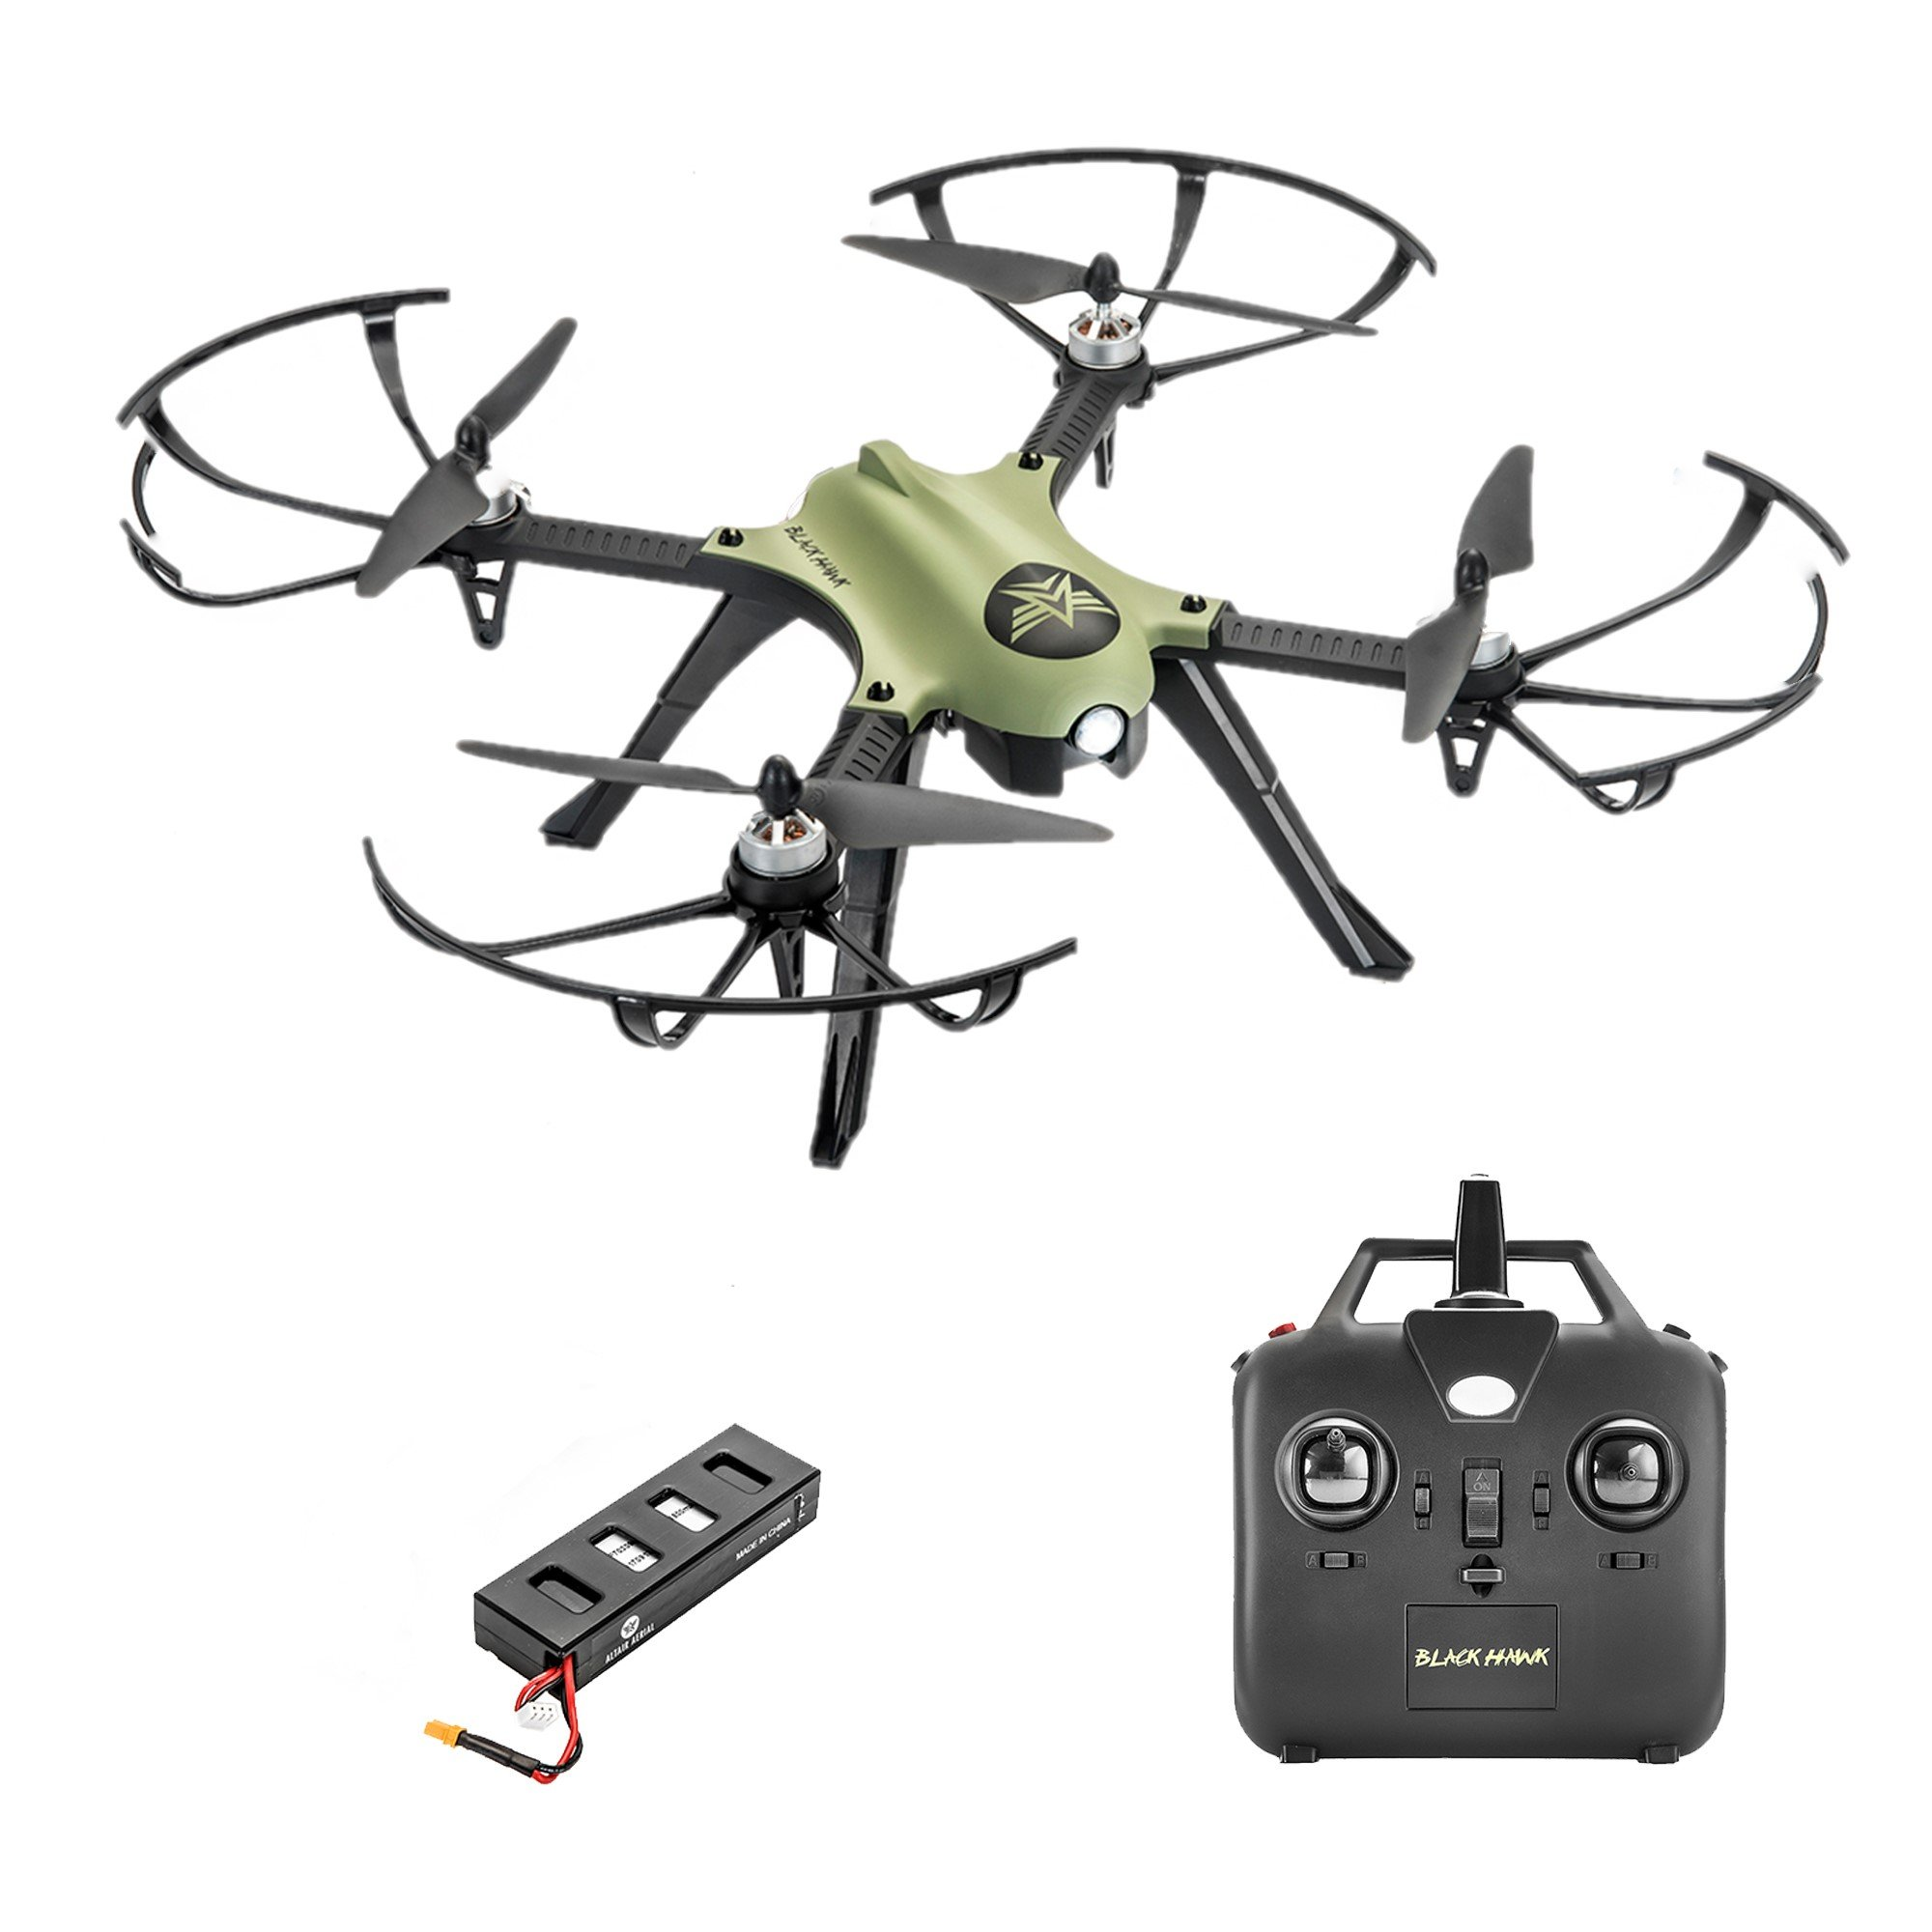 Altair Aerial Compatible Construction Quadcopter